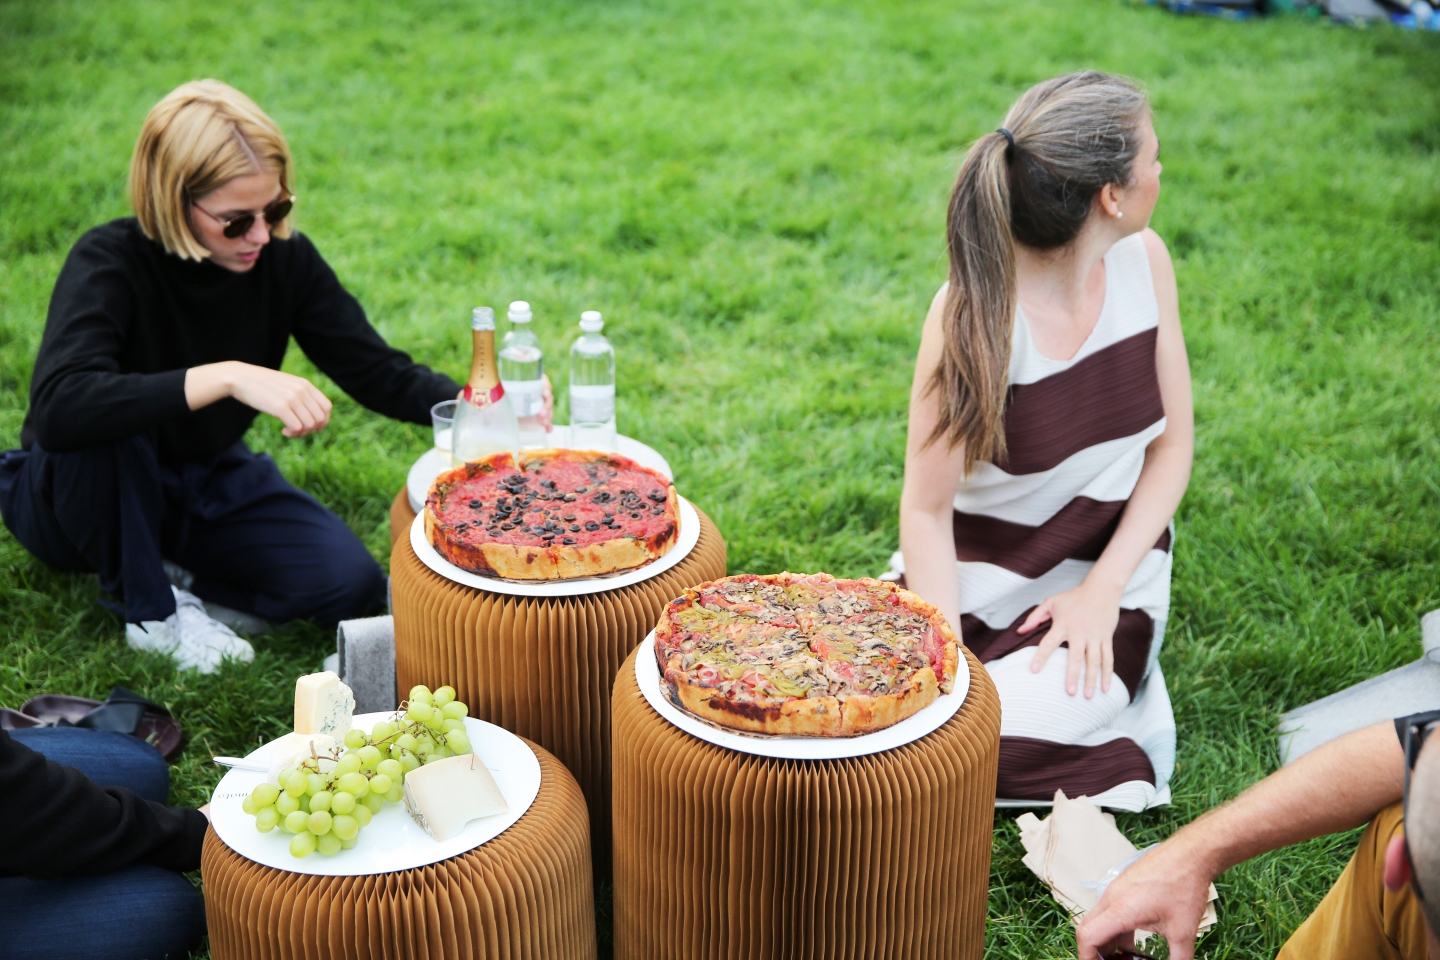 picnic in the park; enjoying Chicago deep dish pizza on tables made from softseating fanning stools - paper stool by molo